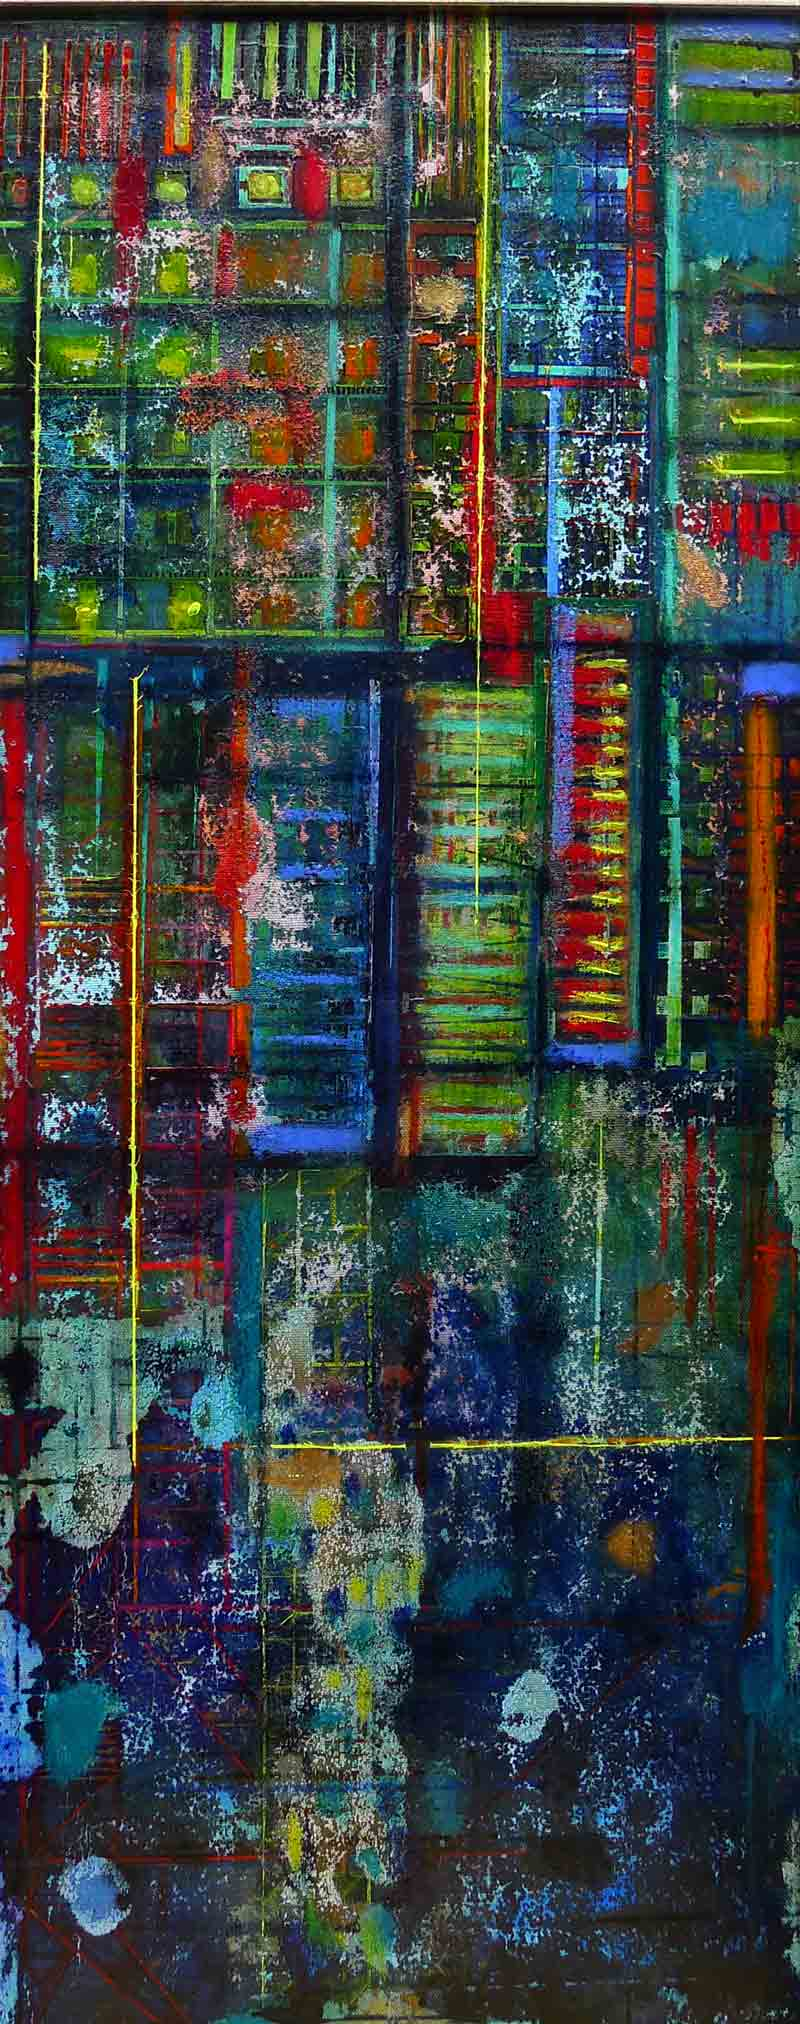 Laurence Causse-Parsley    Urban Mirror II, 2016. Mixed media on canvas. 39 x 95 cm. £1495  .00